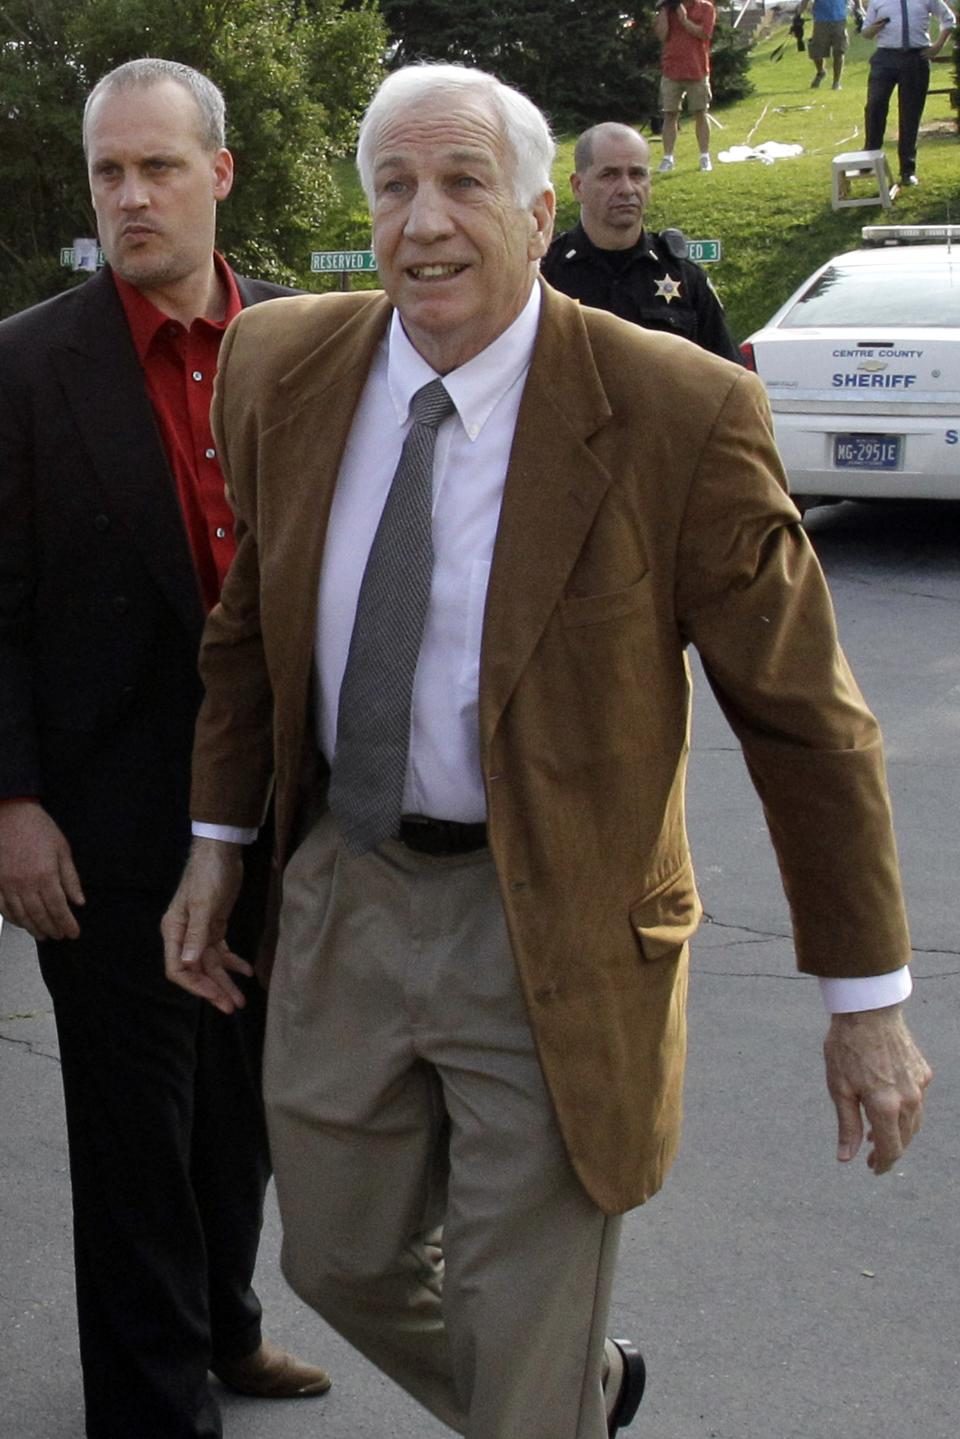 Former Penn State University assistant football coach Jerry Sandusky, center, arrives at the Centre County Courthouse in Bellefonte, Pa., Friday, June 22, 2012. Sandusky is accused of sexual abuse of 10 boys over a 15-year period.   (AP Photo/Gene J. Puskar)